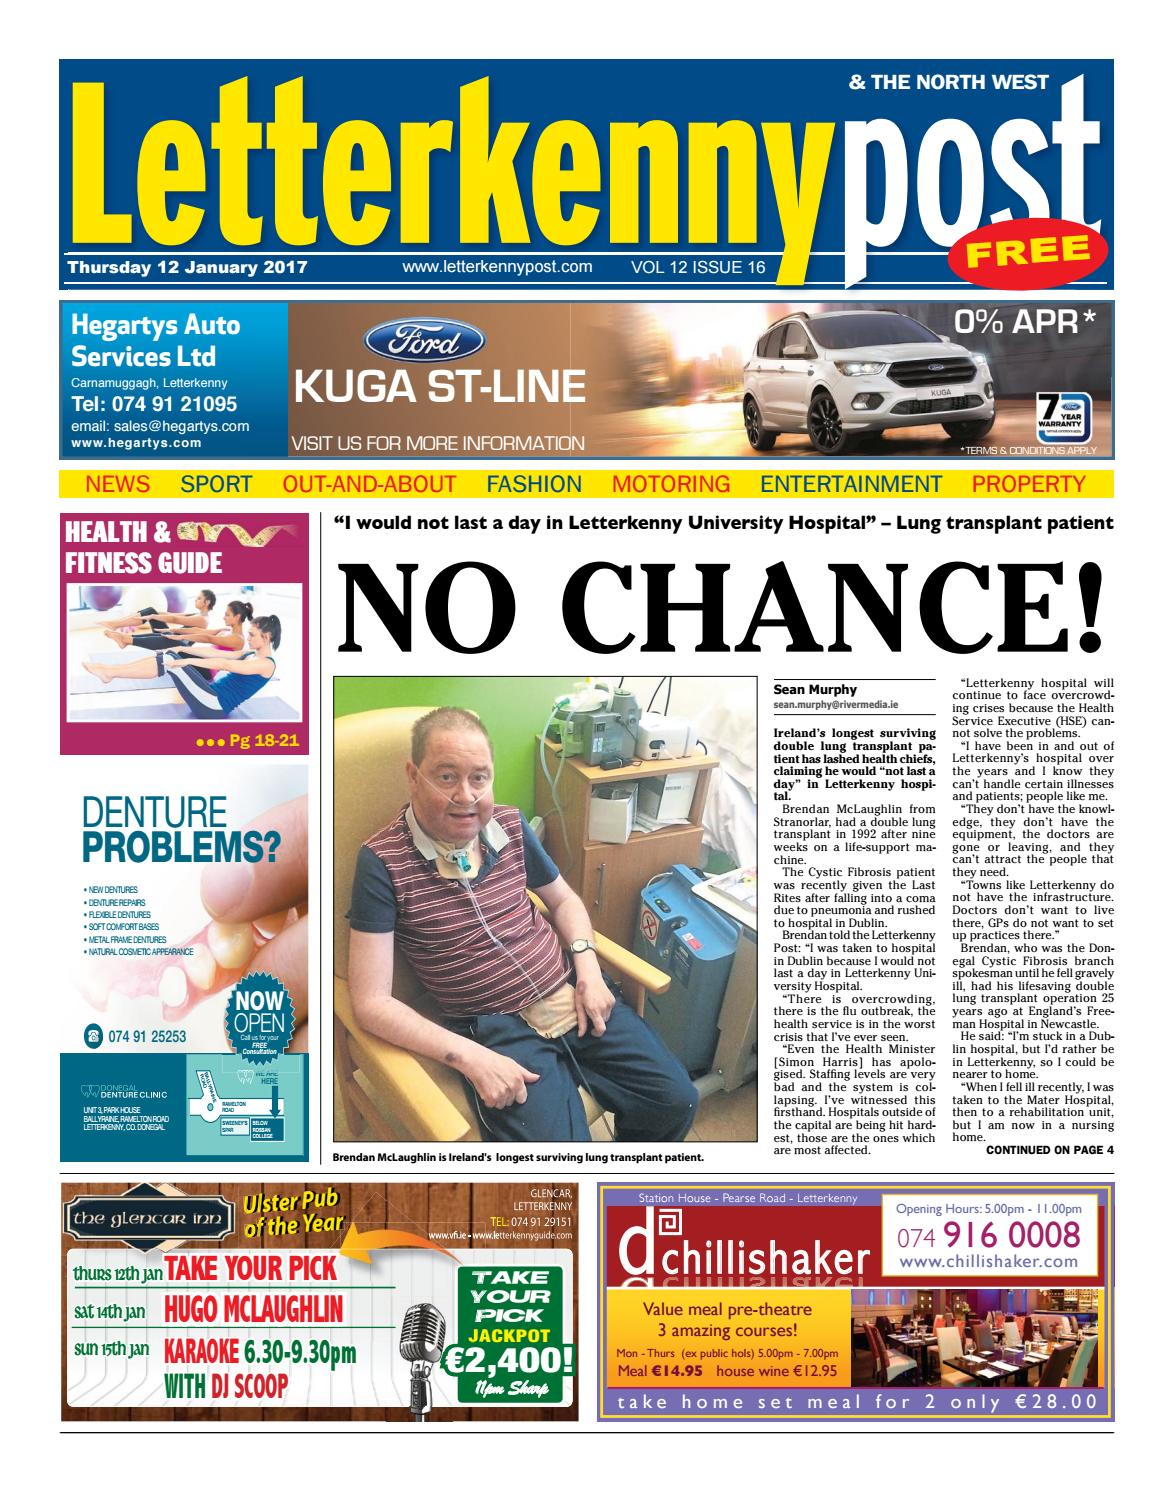 Letterkenny Post 12 01 17 By River Media Newspapers Issuu